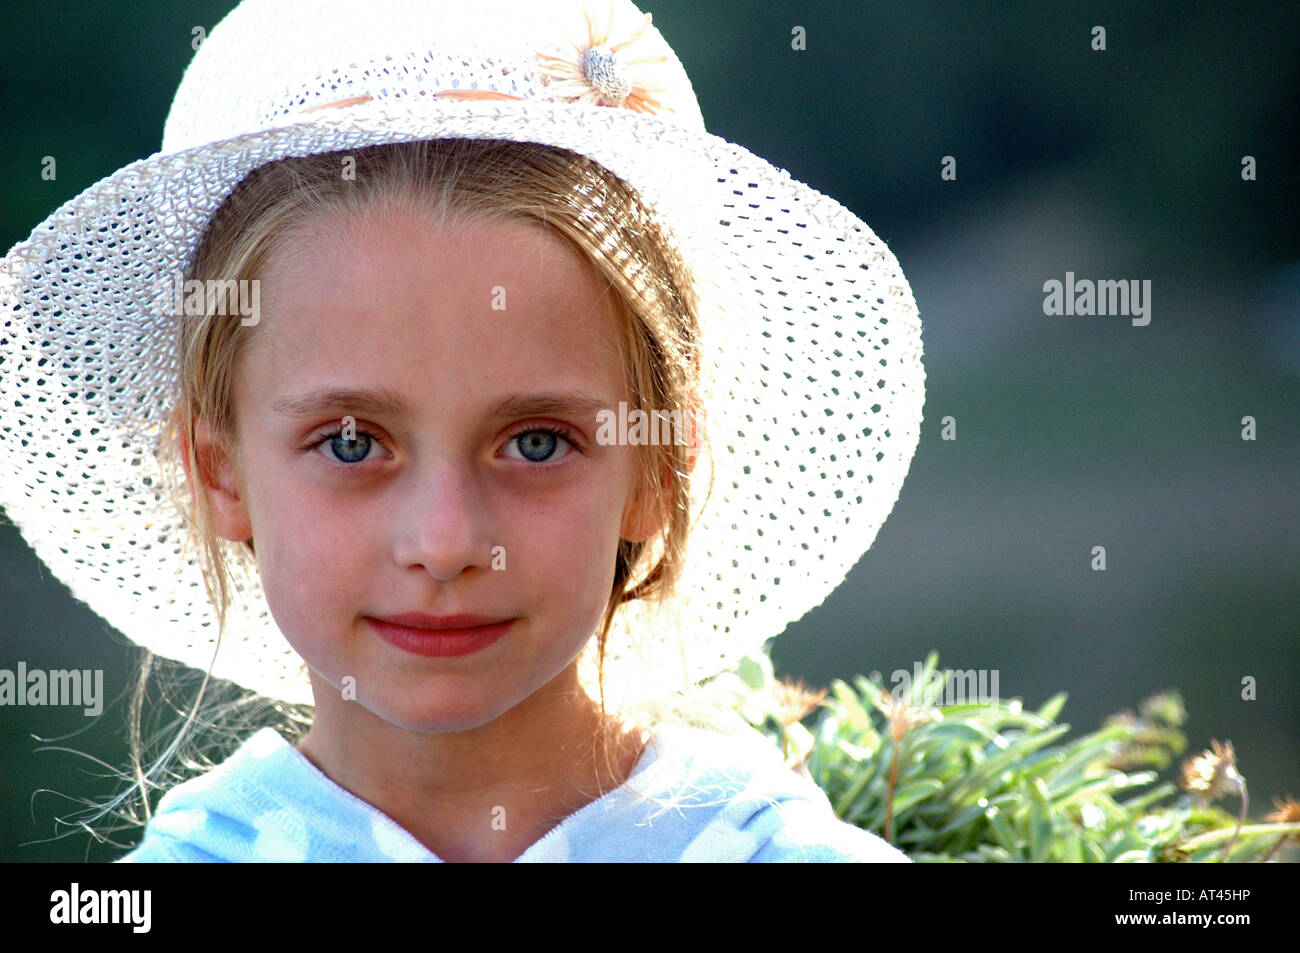 Royalty free photograph of British young girl on summer holiday in sunshine wearing a sun hat and posing for a portrait. - Stock Image